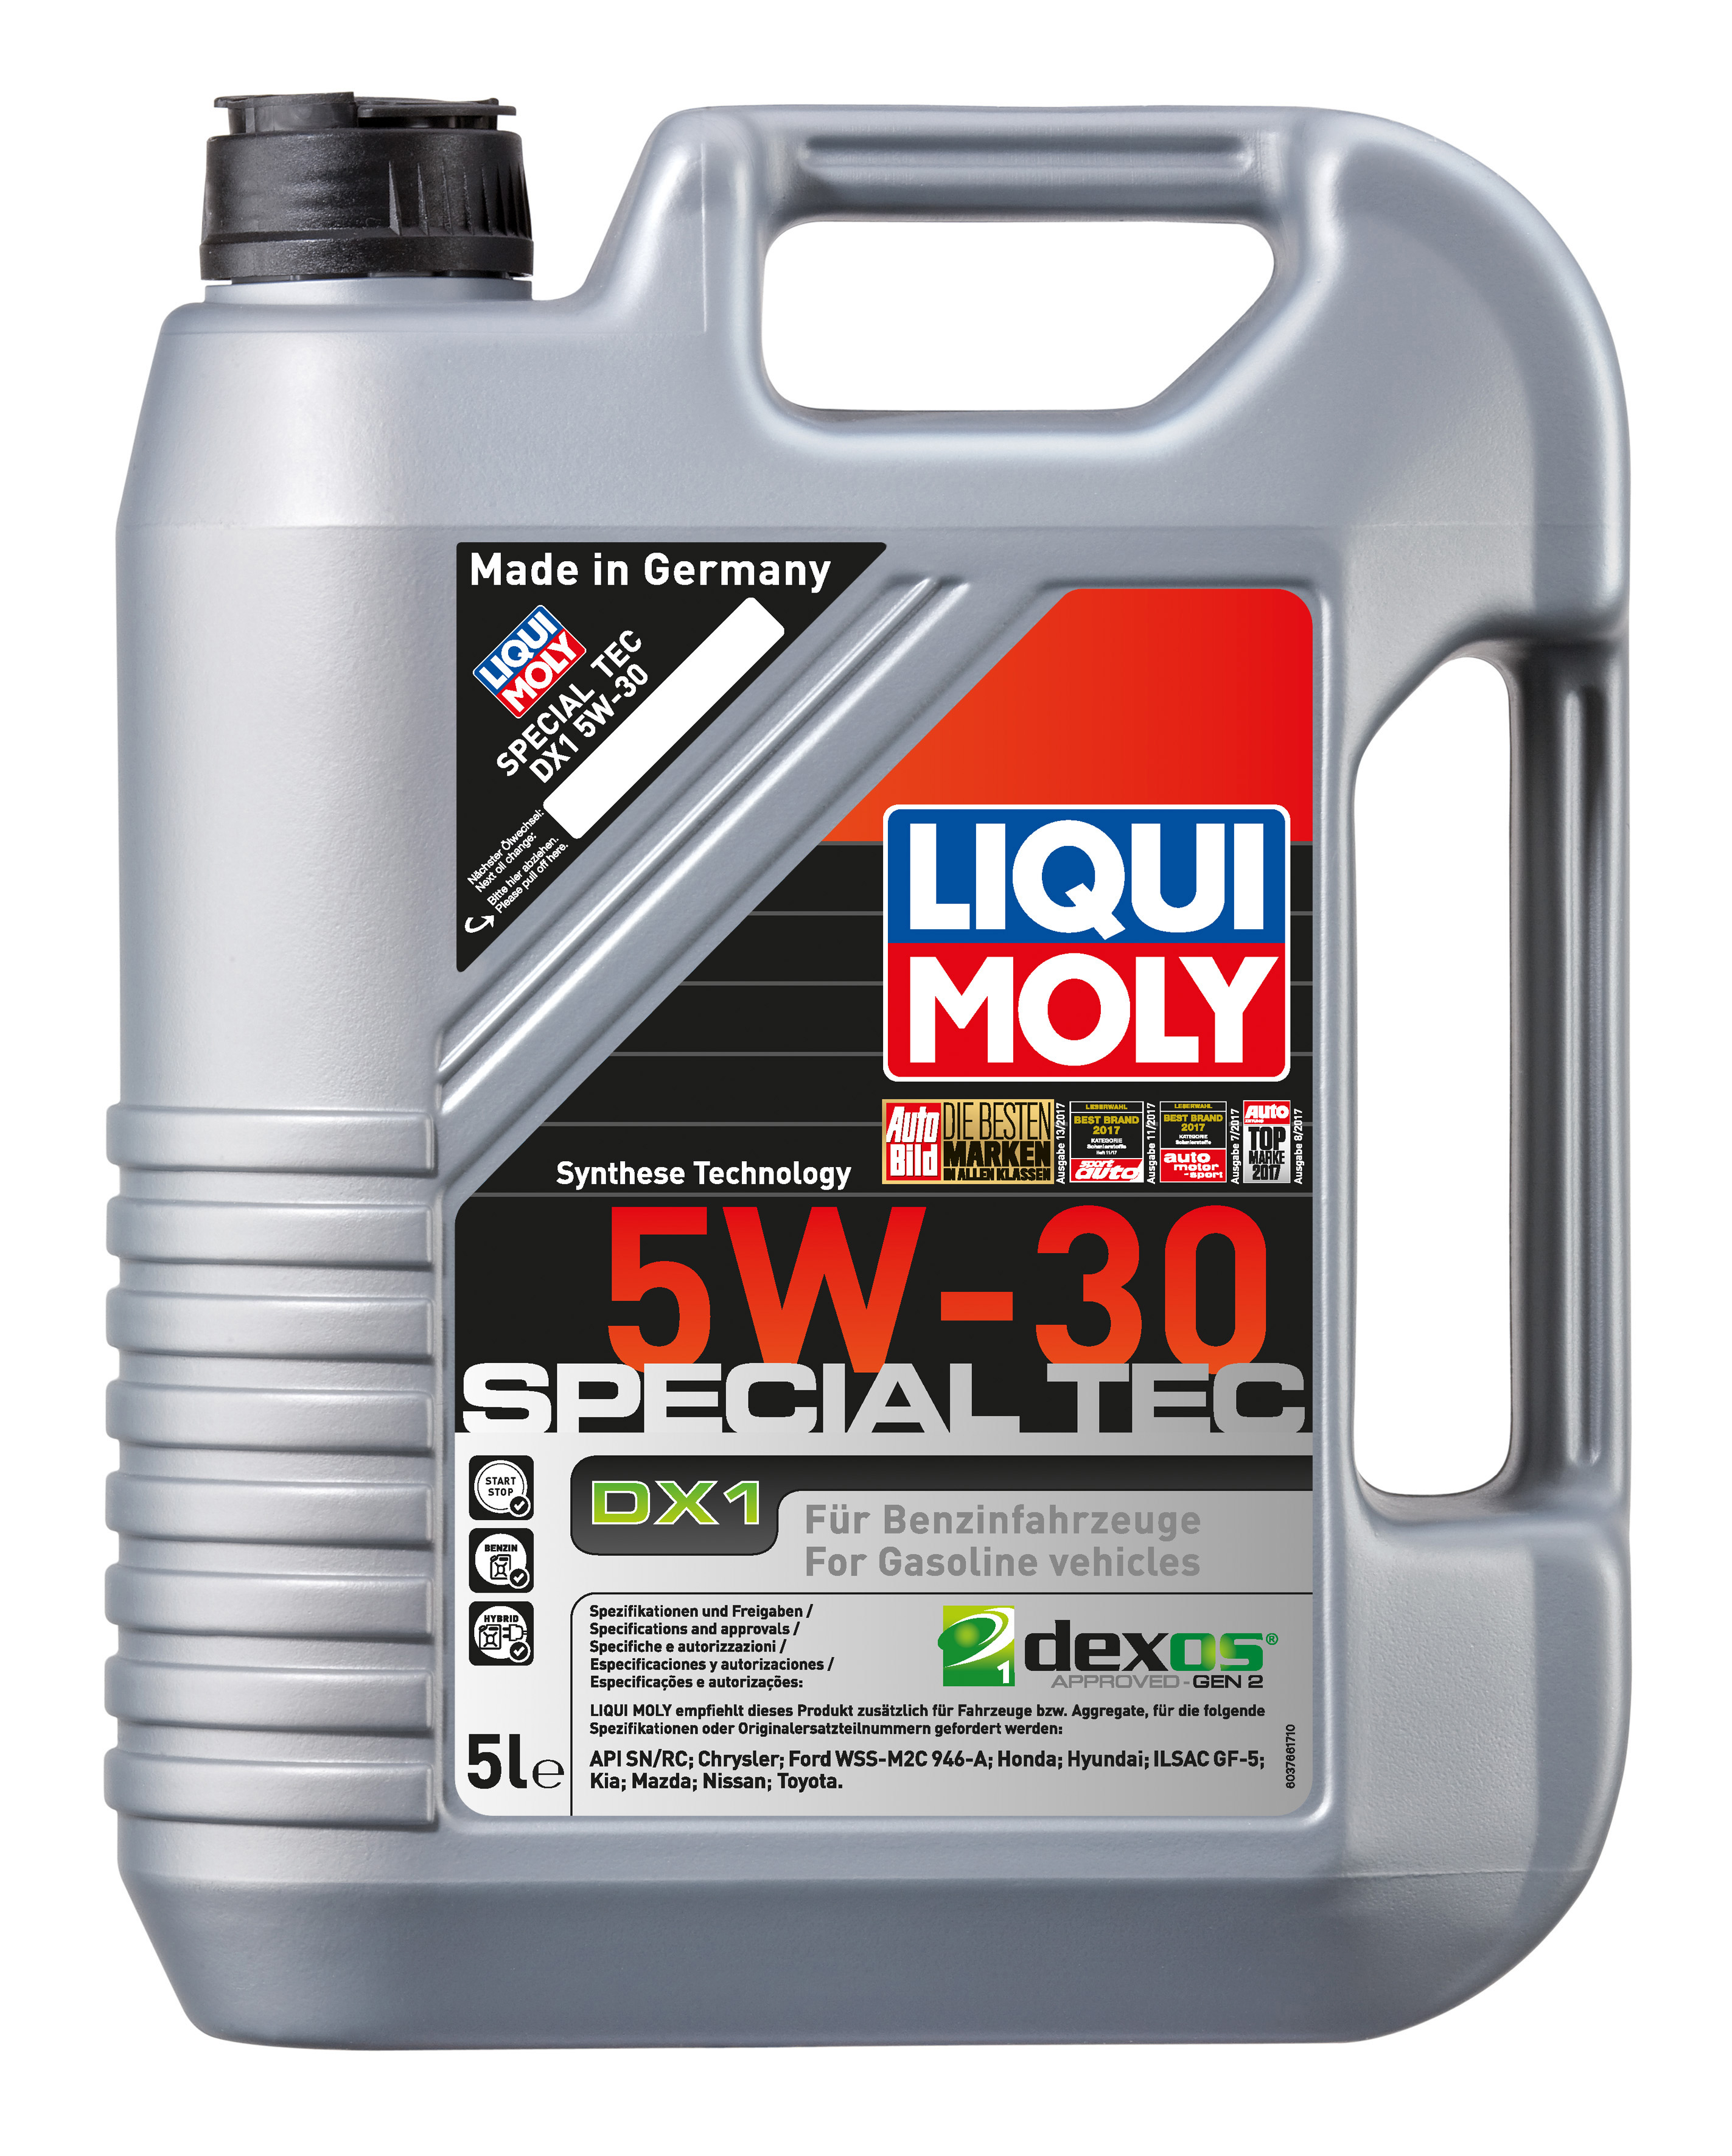 What Is Dexos Oil >> New Liqui Moly Product For Opel Vauxhall And General Motors